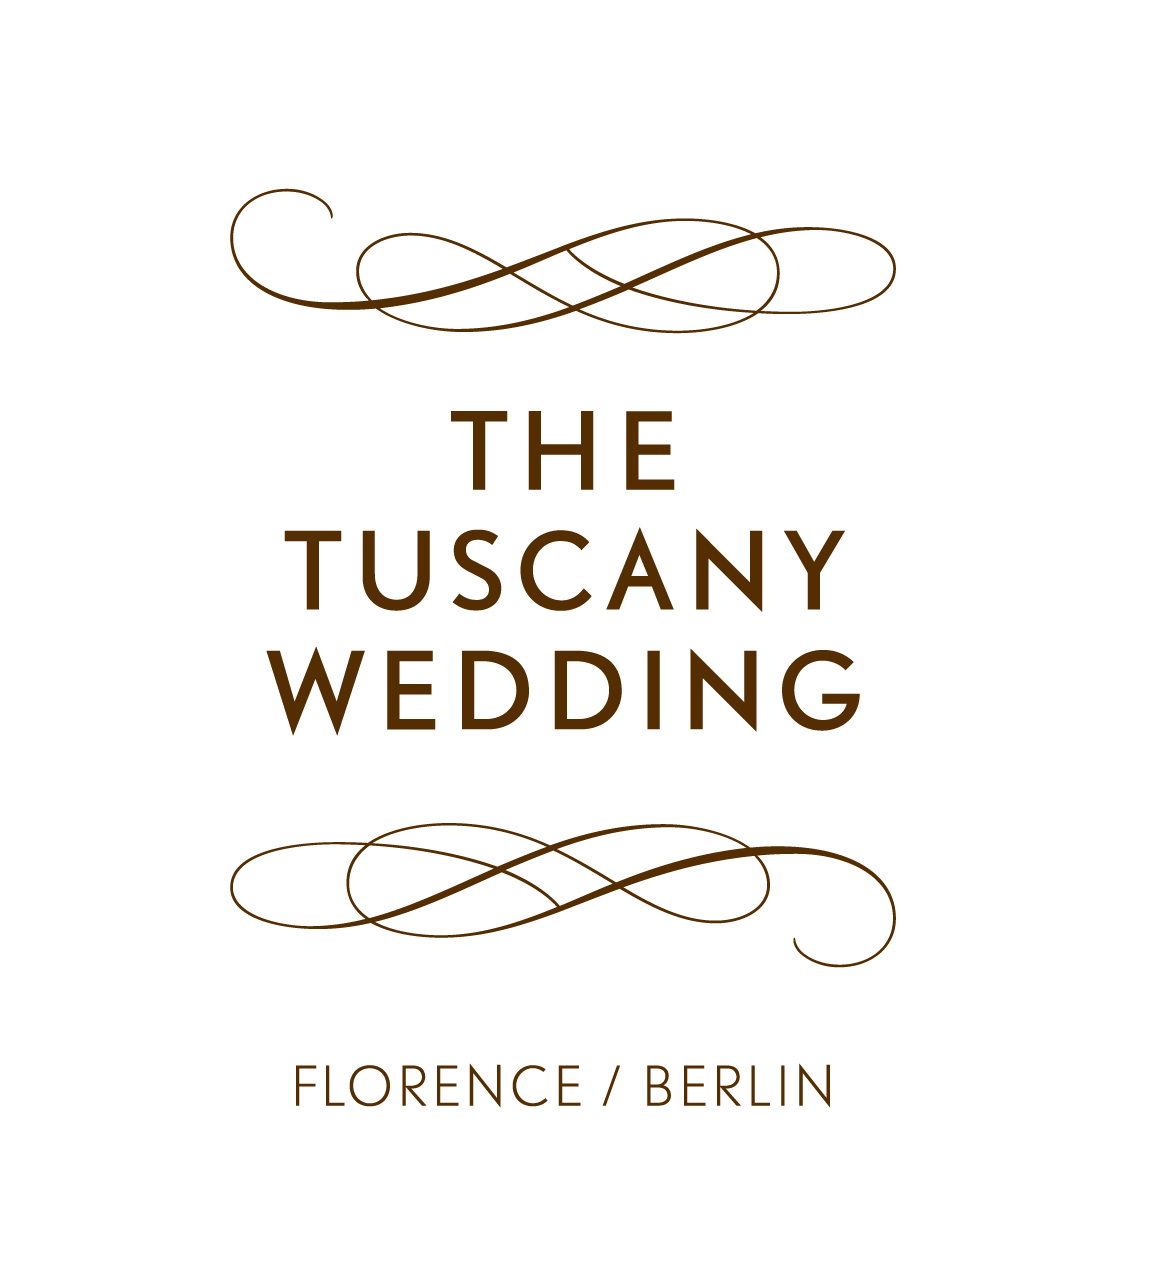 THE TUSCANY WEDDING